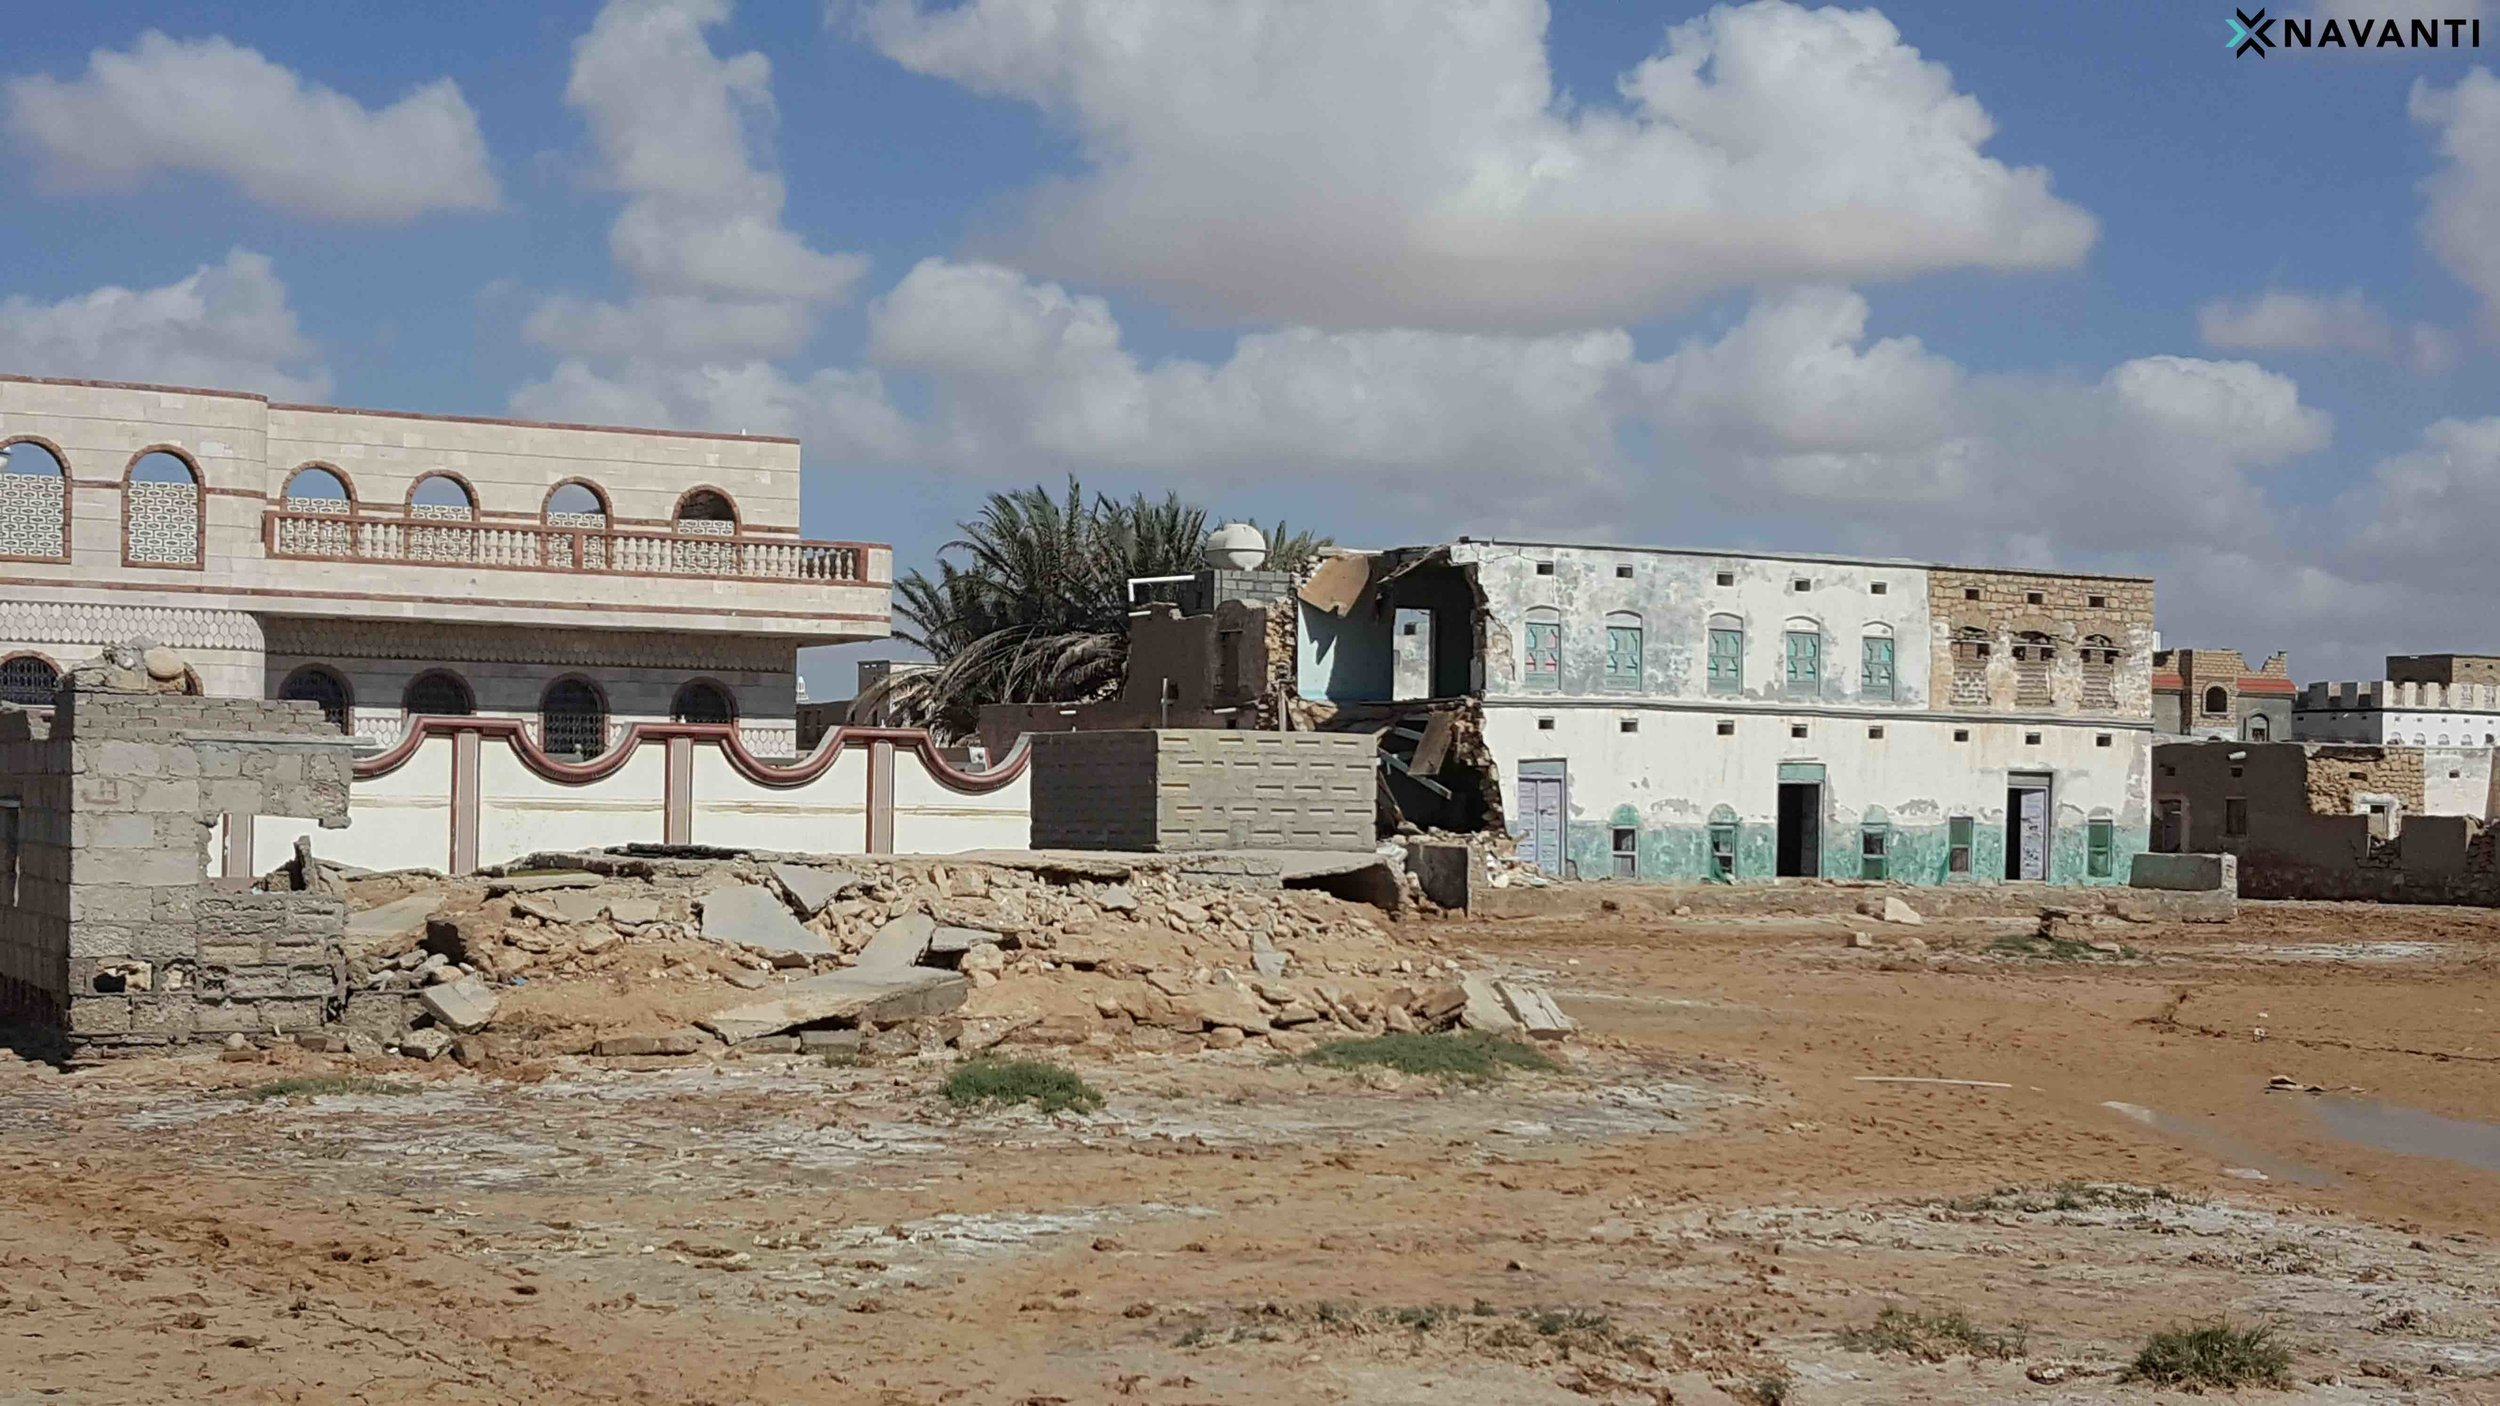 Houses in the town of Qishn, al-Mahra, damaged by Cyclone Luban. Source: Navanti